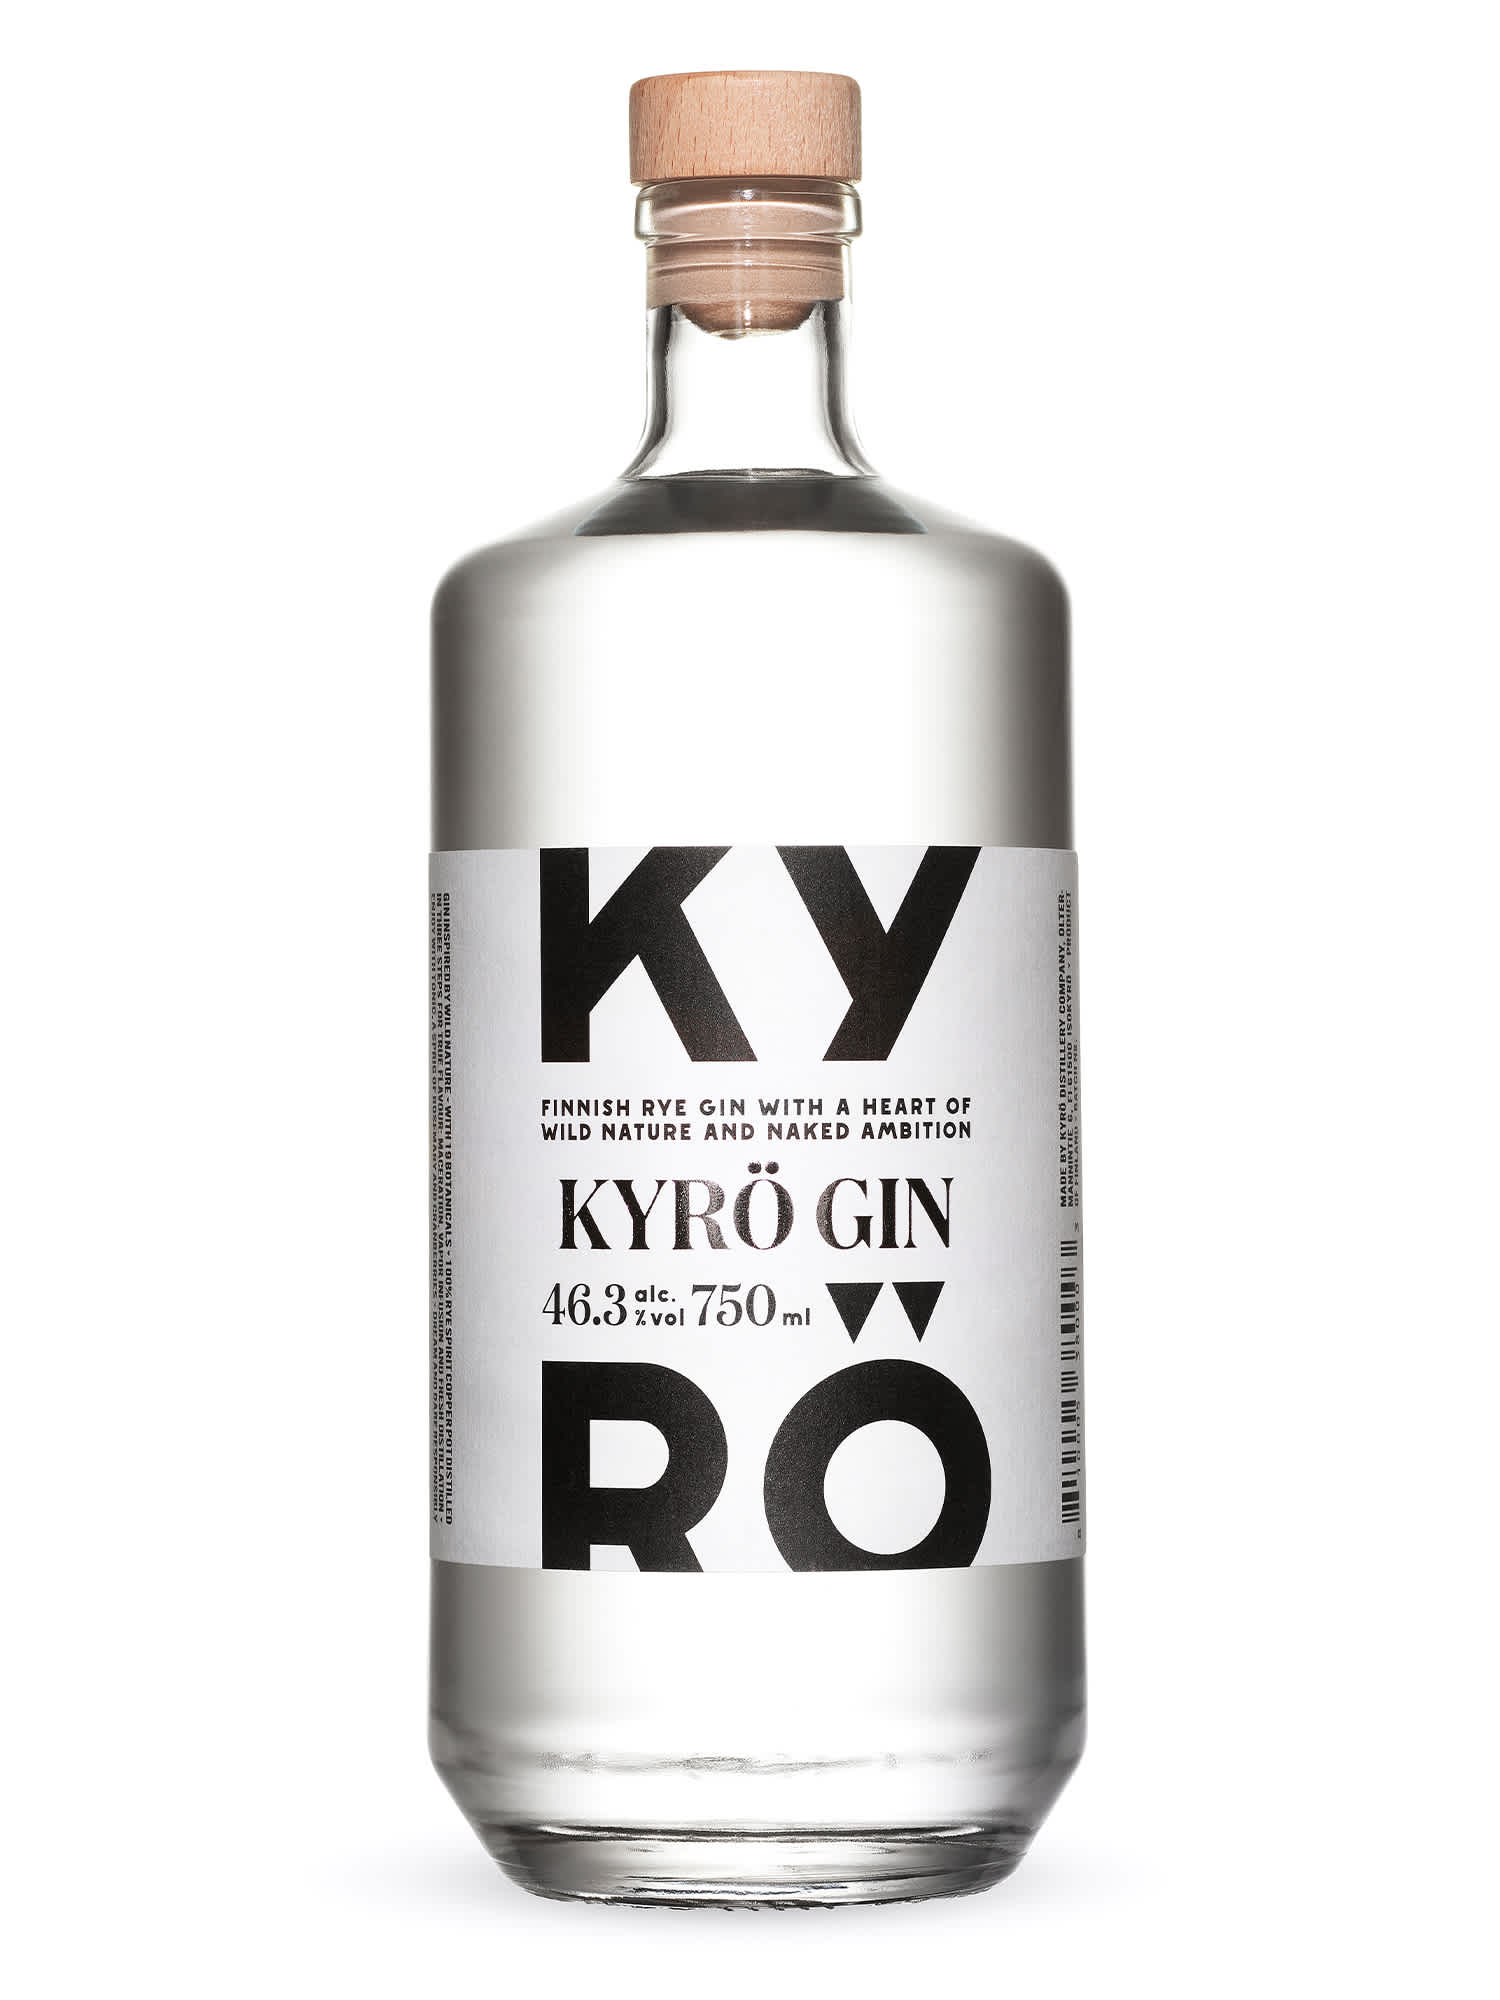 Product phoot: 750 ml bottle of award-winning Kyrö Gin (formerly known as Napue).